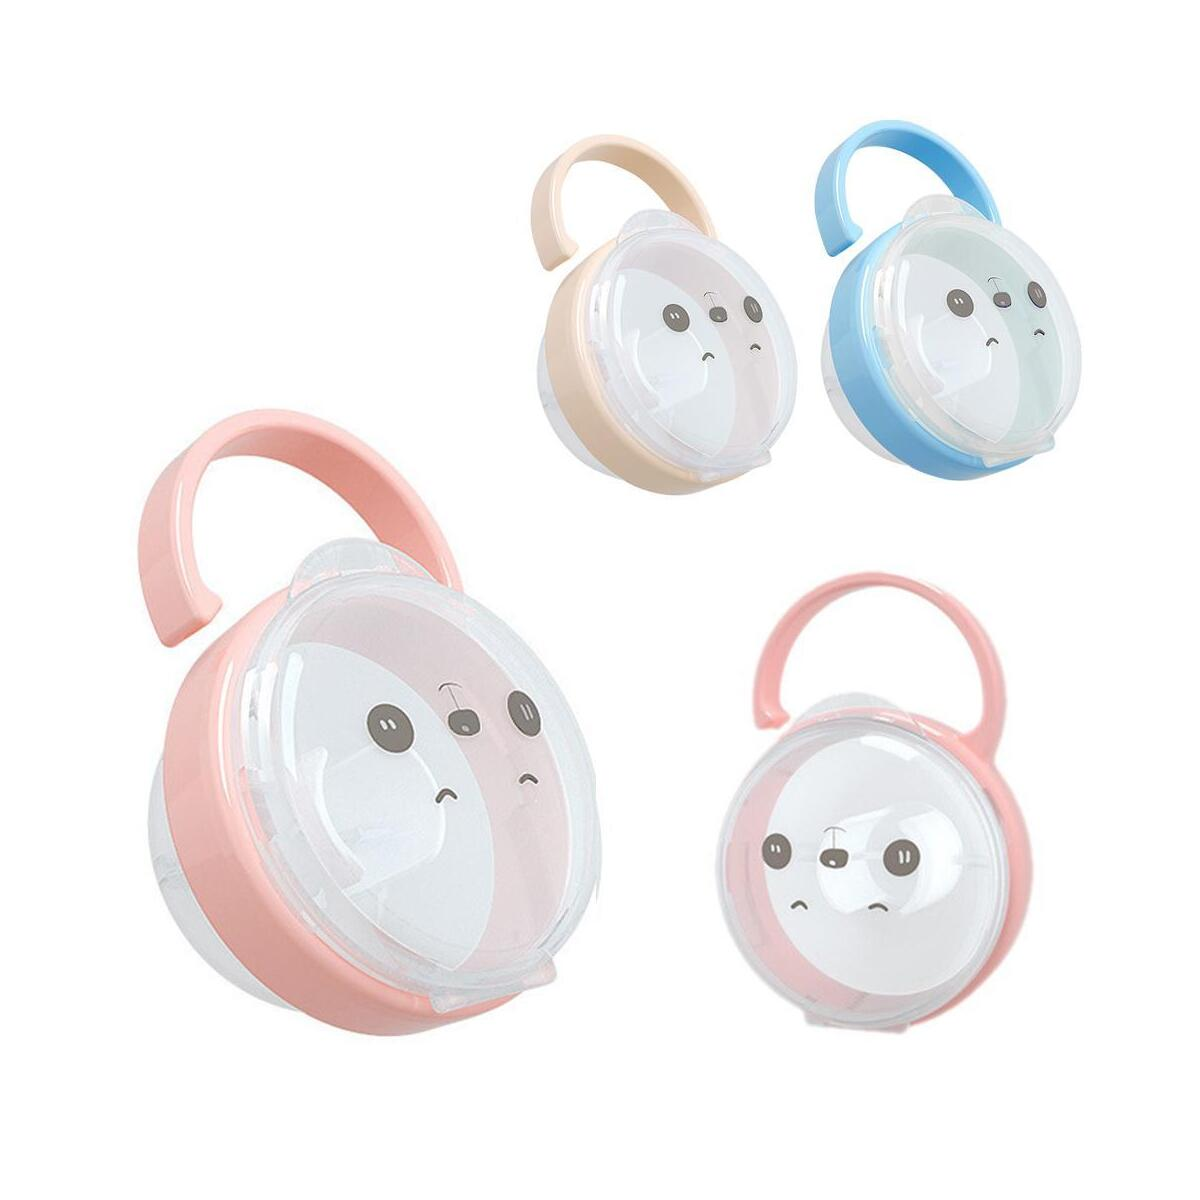 Portable Baby Infant Pacifier Nipple Cradle Case Pacifier Box Holder for Kids Travel Storage Box